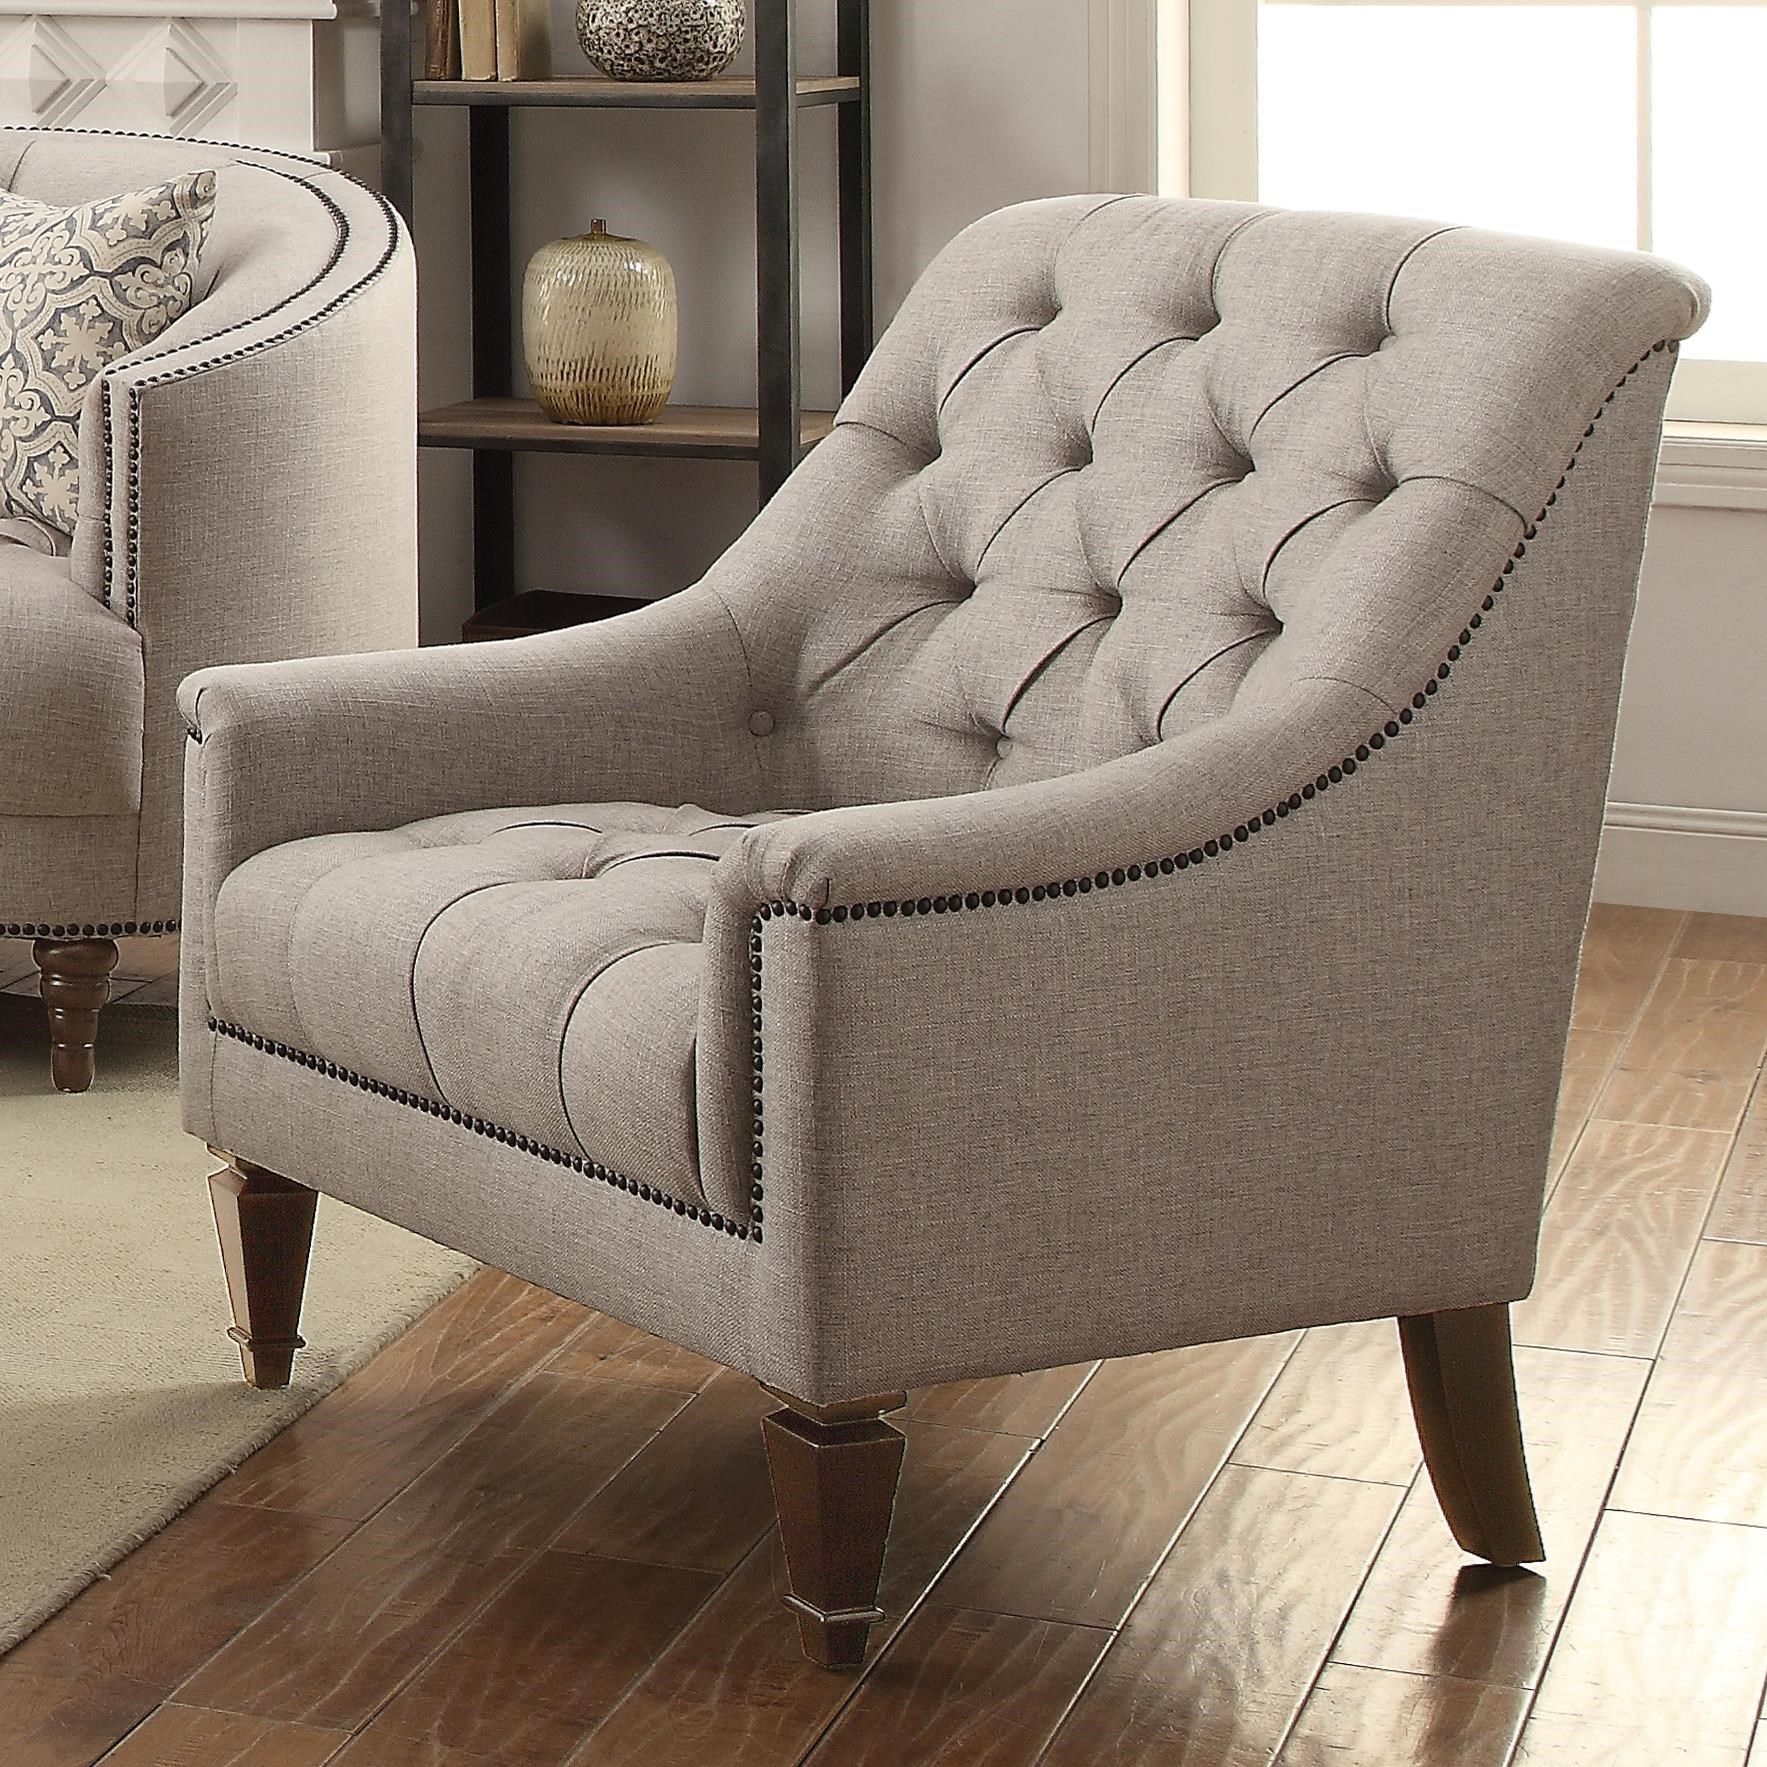 Coaster Avonlea 505643 Upholstered Chair with Heavy